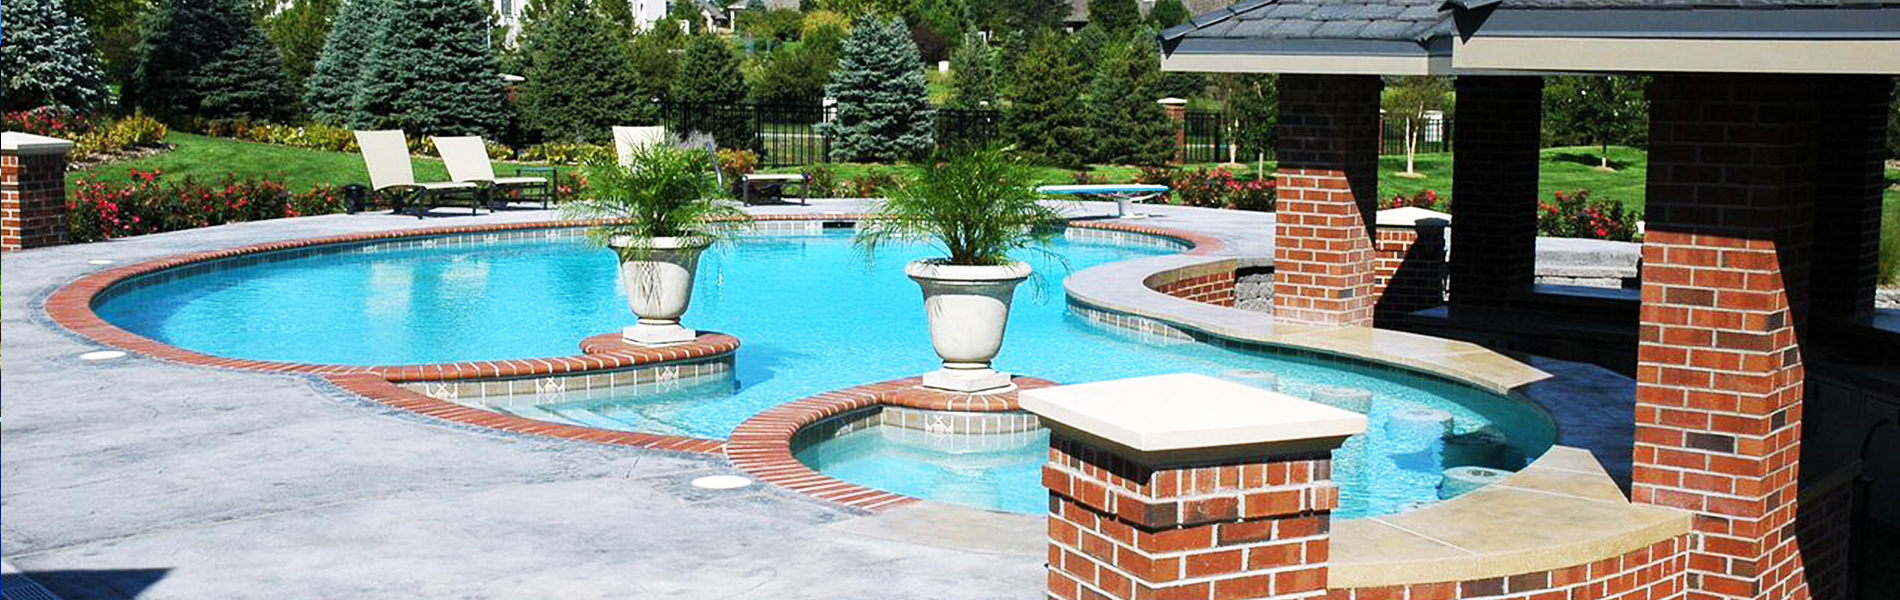 Pool contractors in omaha ne swimming pool contractor for Pool design omaha